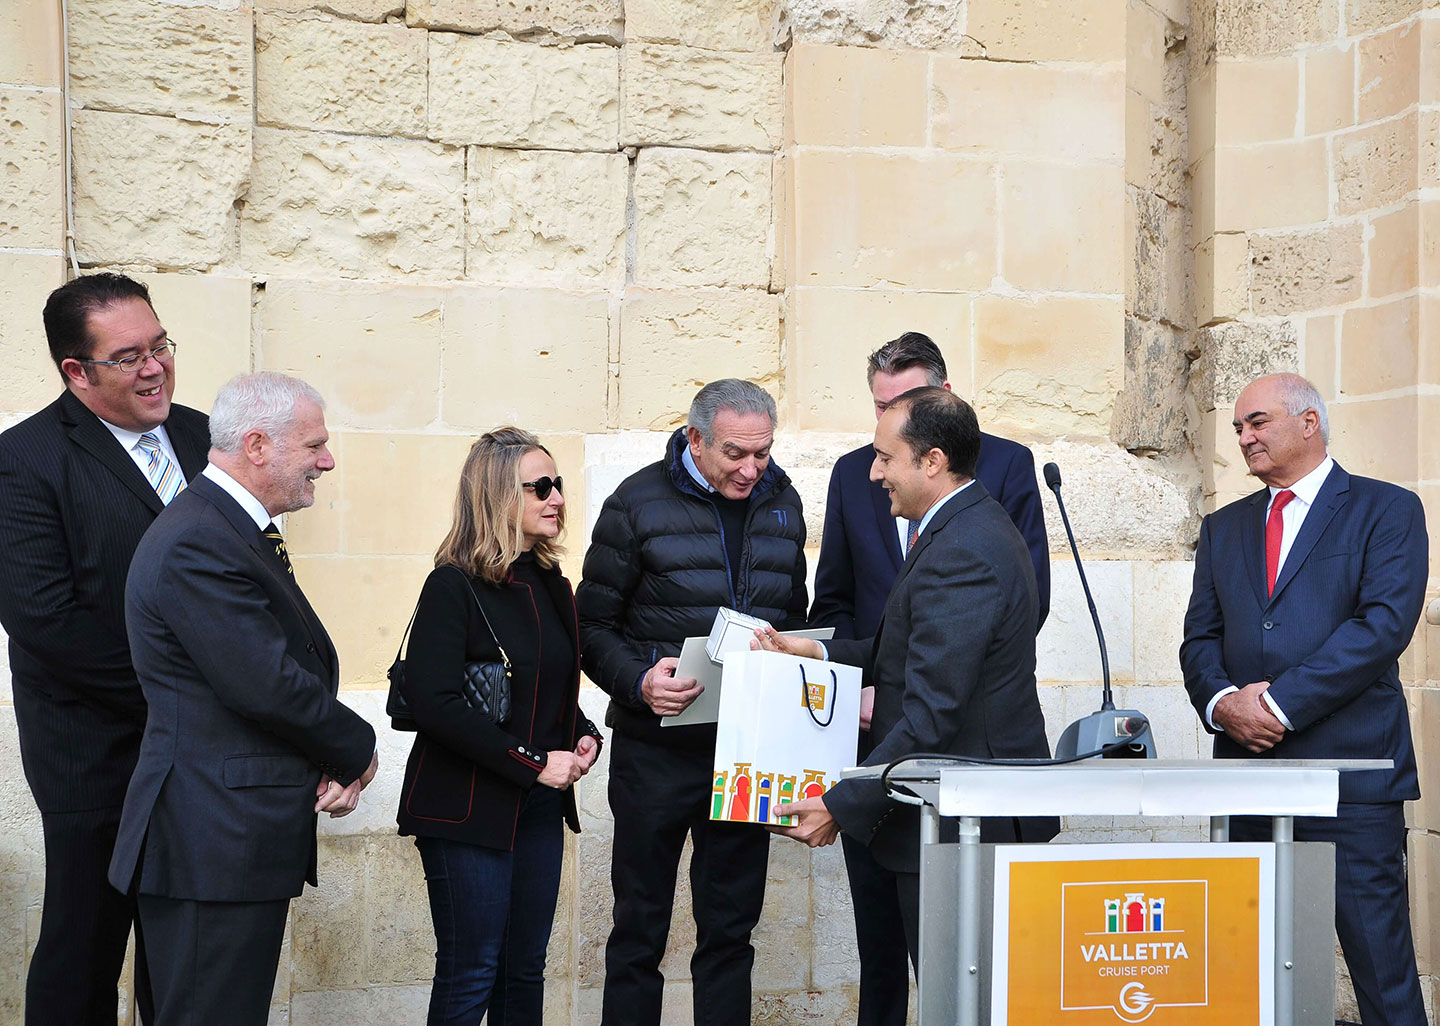 700,000 Cruise Passenger Movements celebrated at Valletta Cruise Port